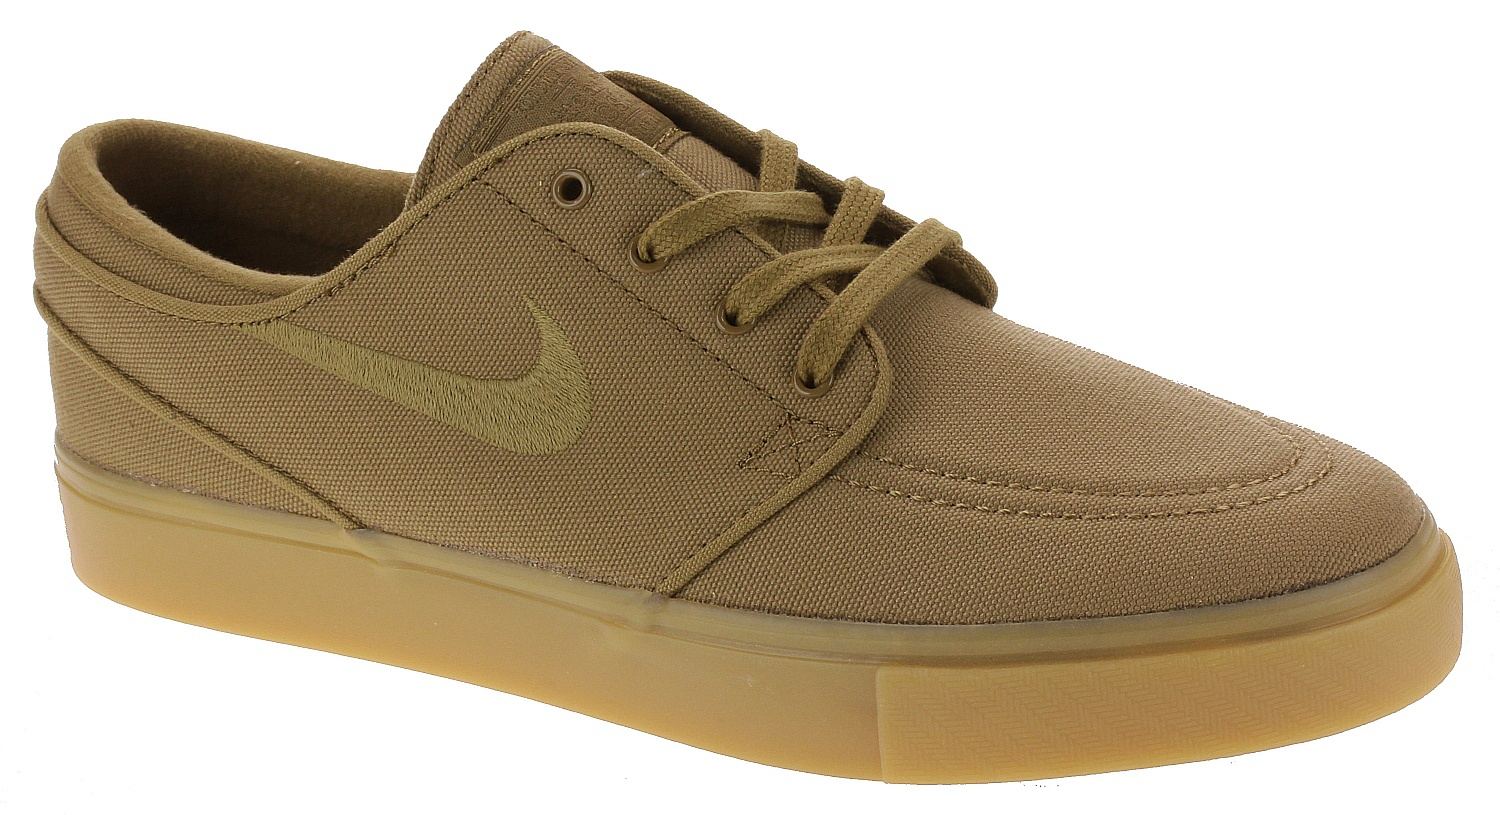 sports shoes 8cdee 1c863 shoes Nike SB Zoom Stefan Janoski Canvas - Golden Beige Golden Beige Gum  Yellow ...